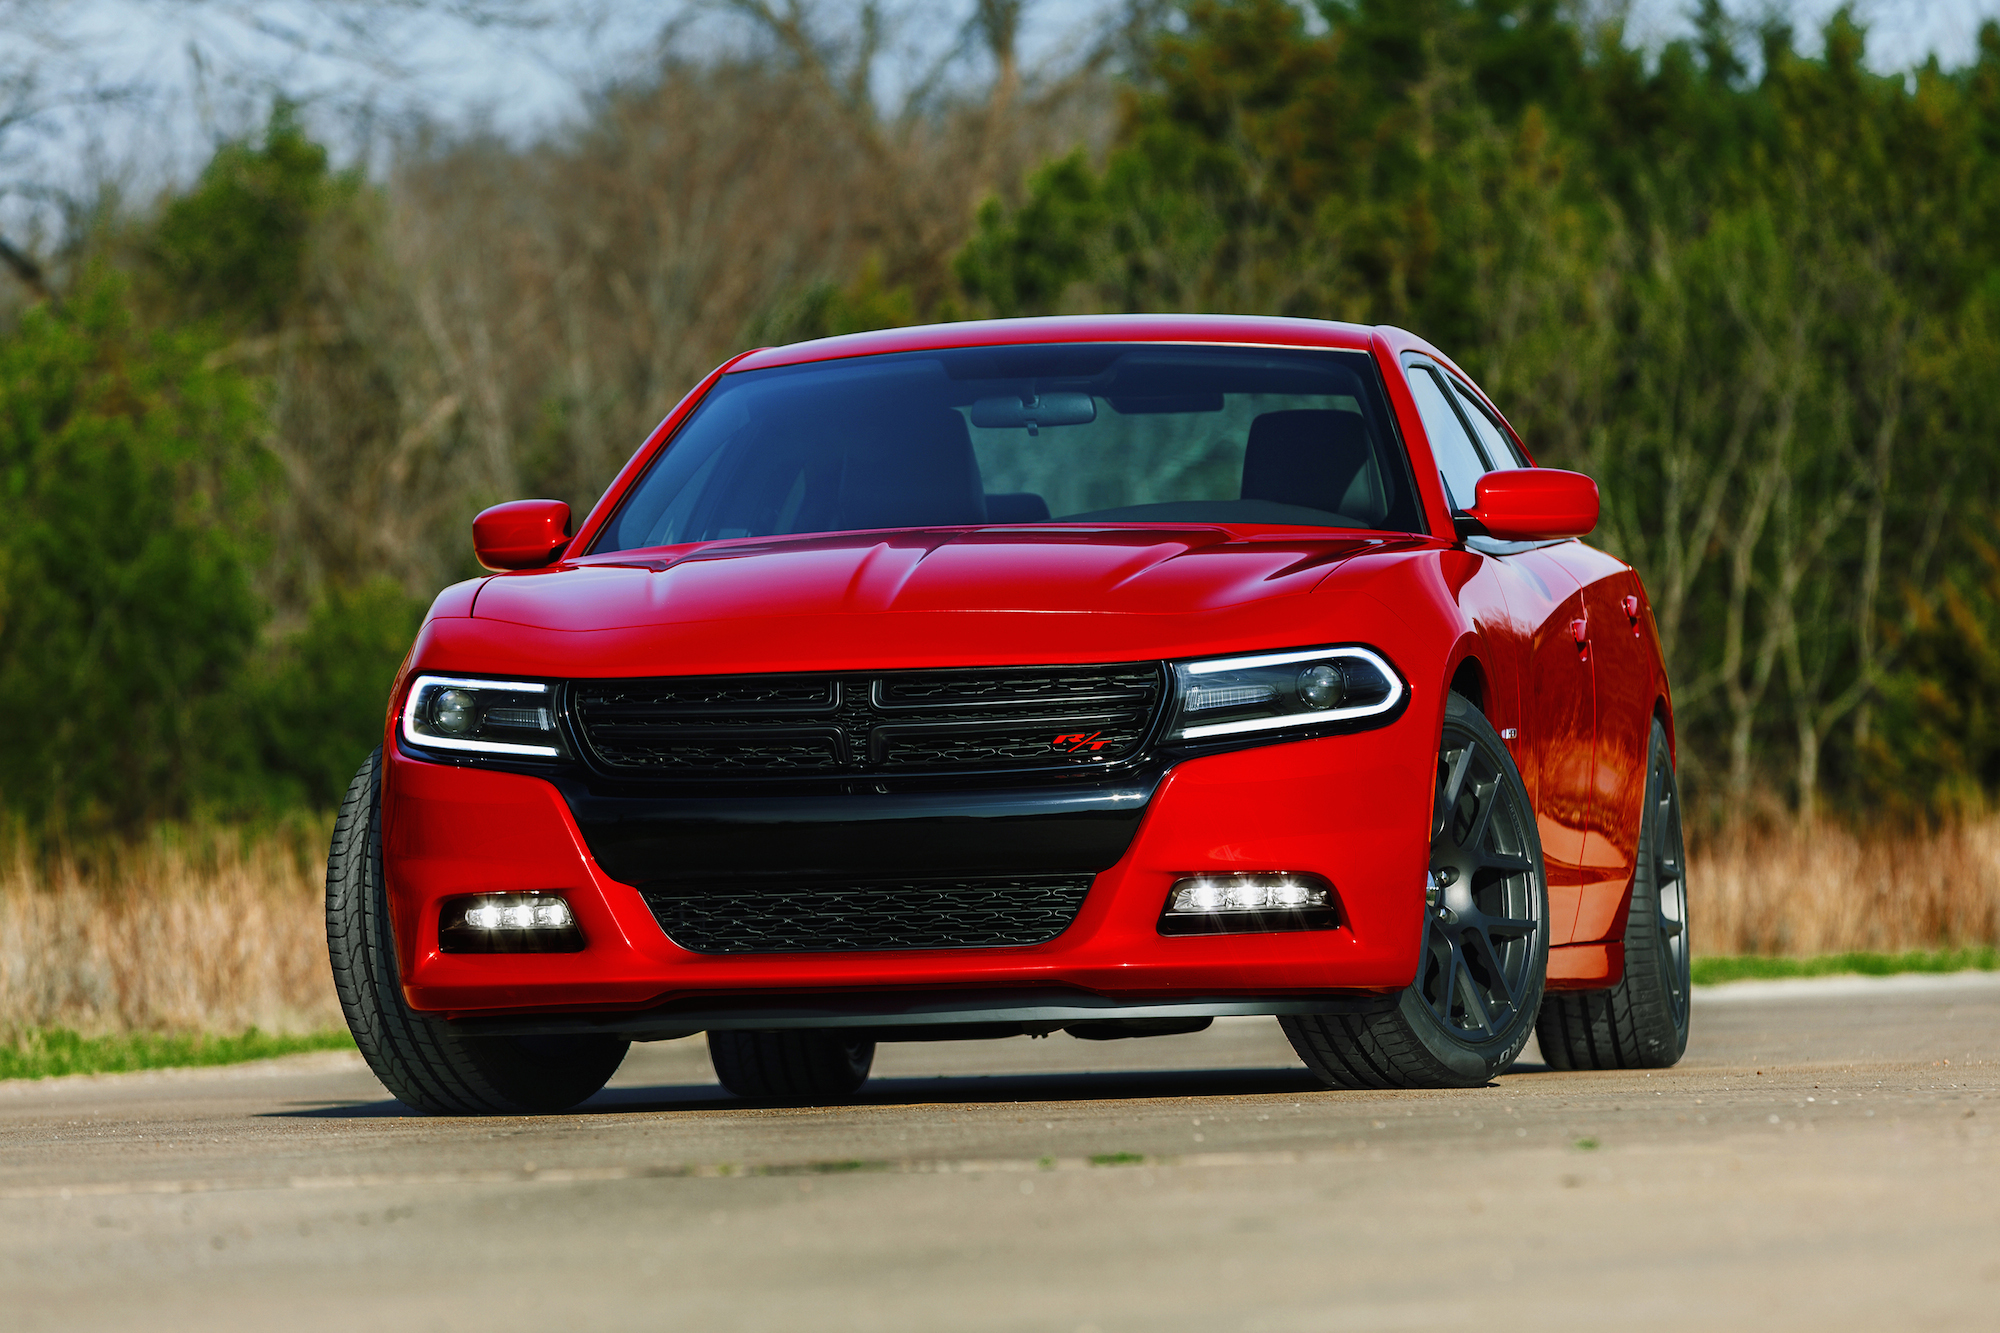 Best Dodge Charger Hellcat Wallpaper